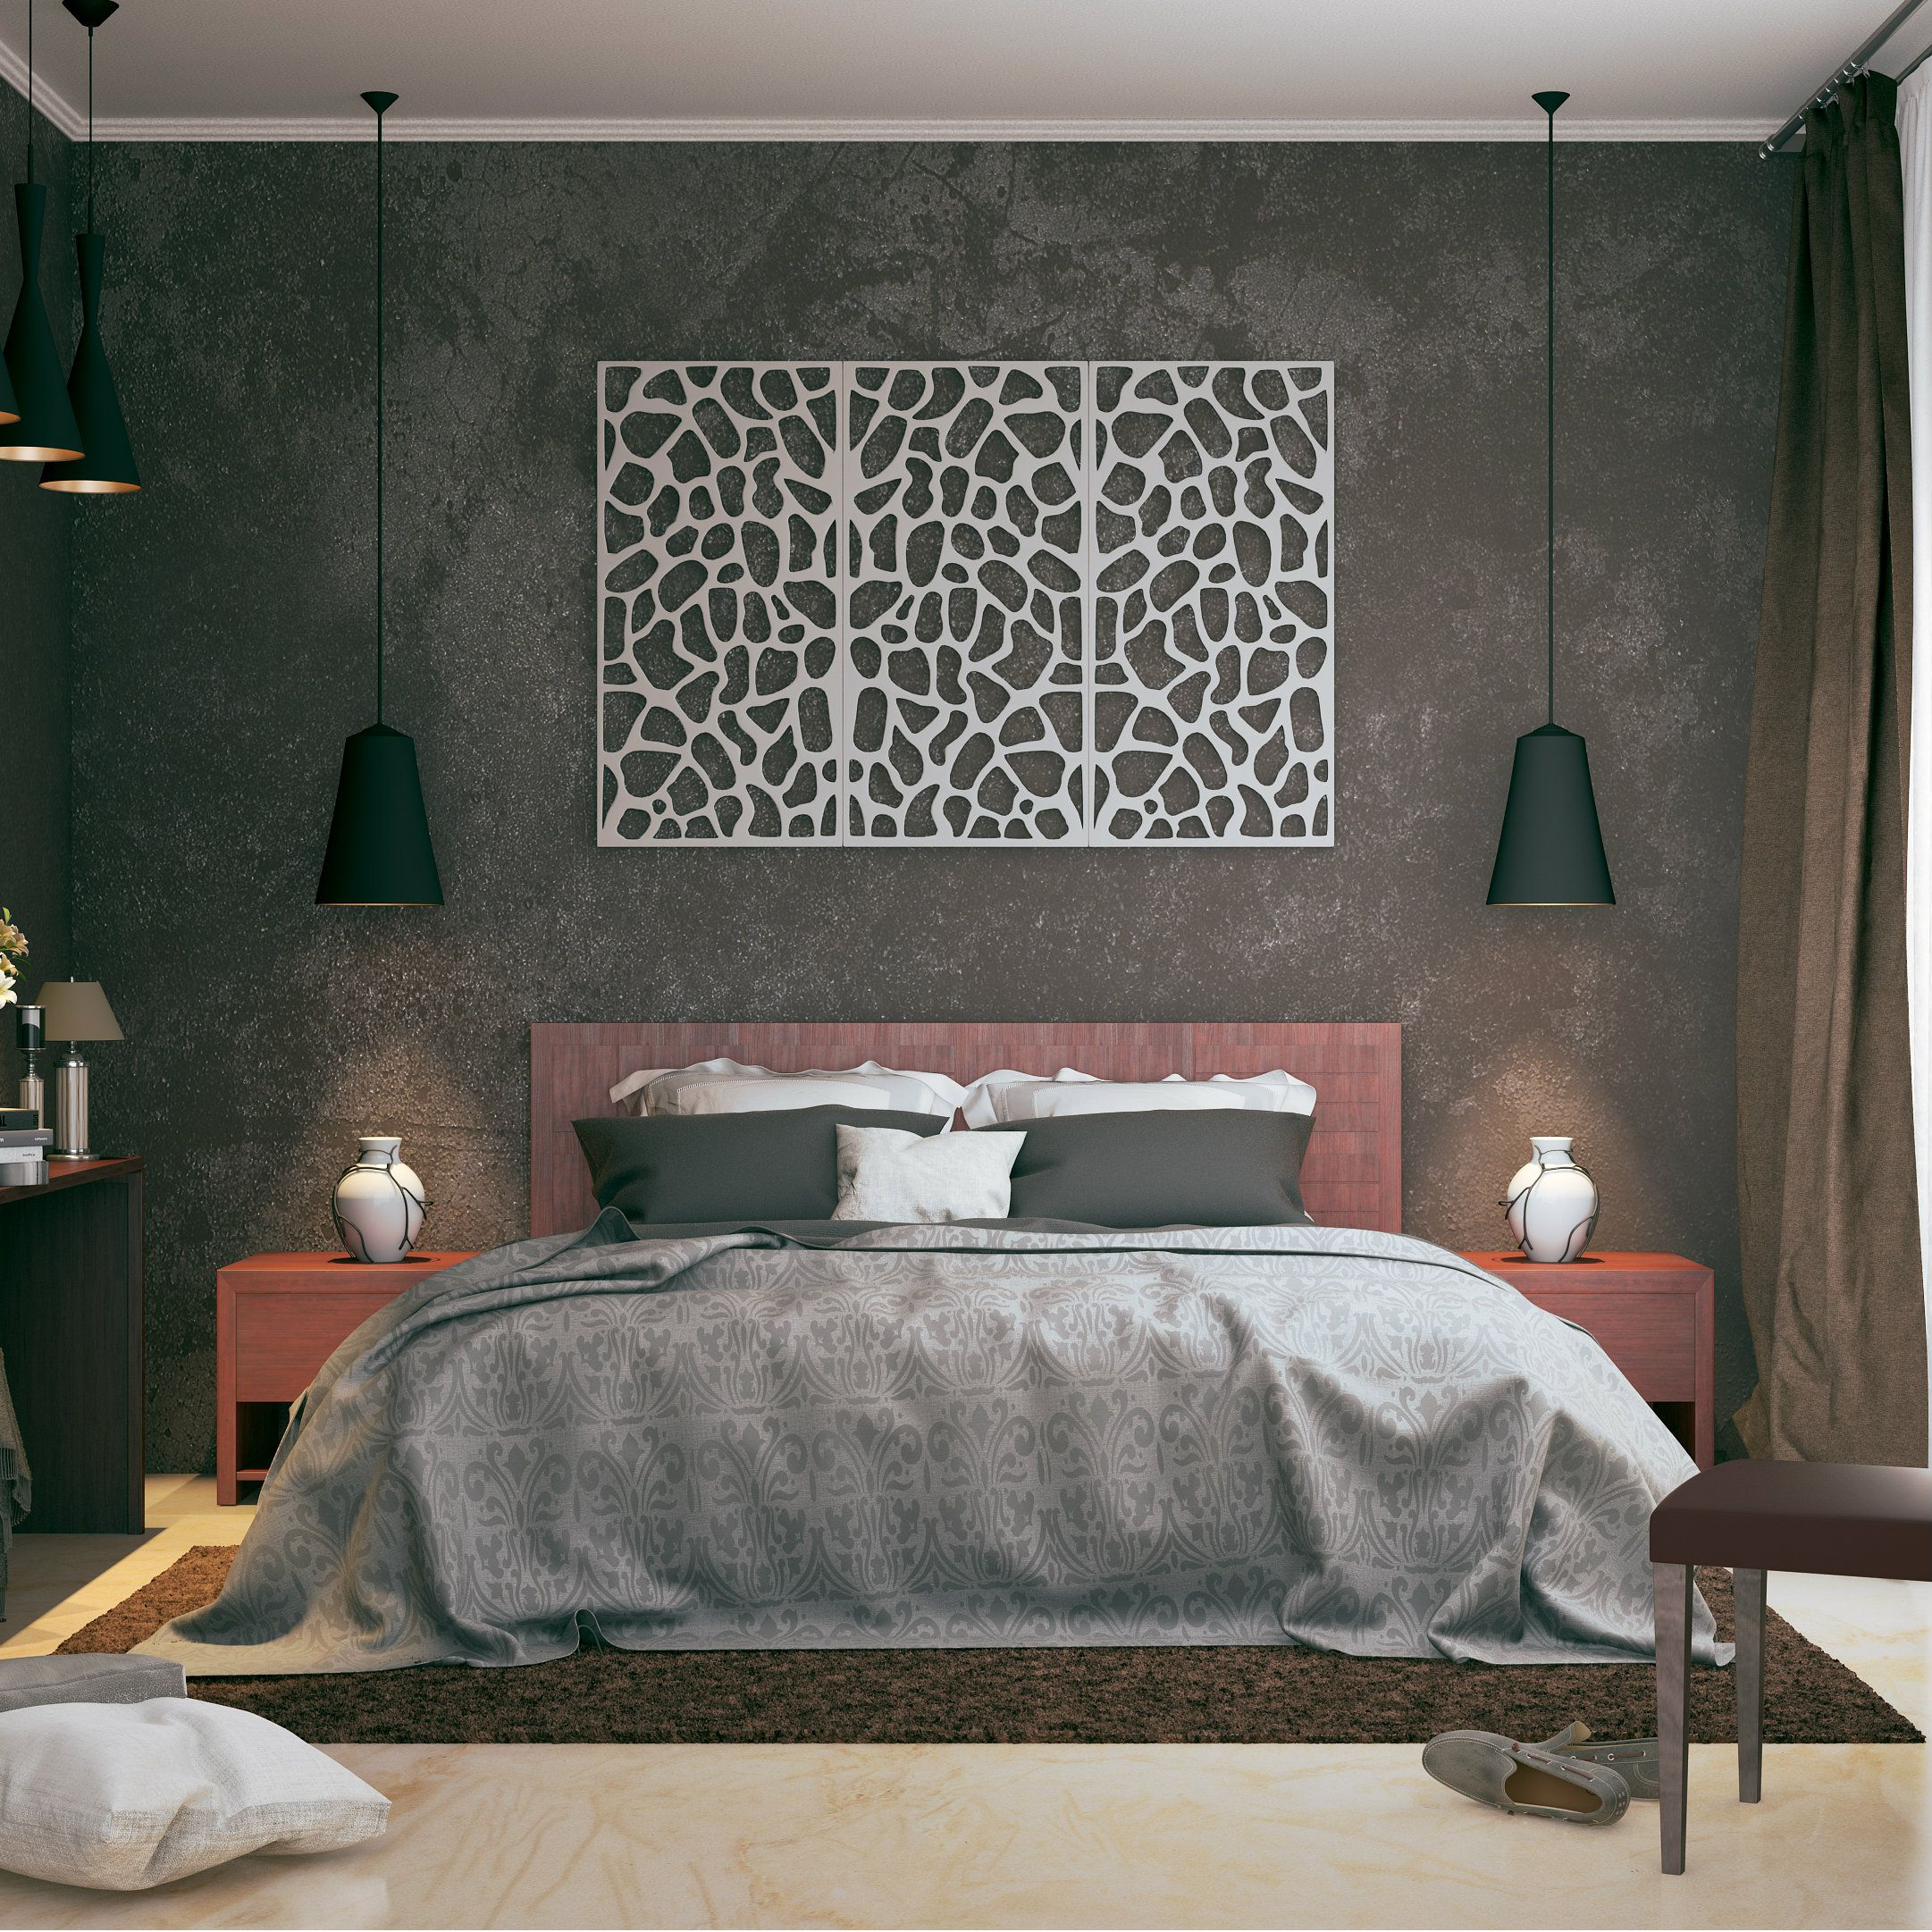 Design An Elegant Bedroom In 5 Easy Steps: Modern Bedroom Design + Rugged Look + Elegant Jali Design